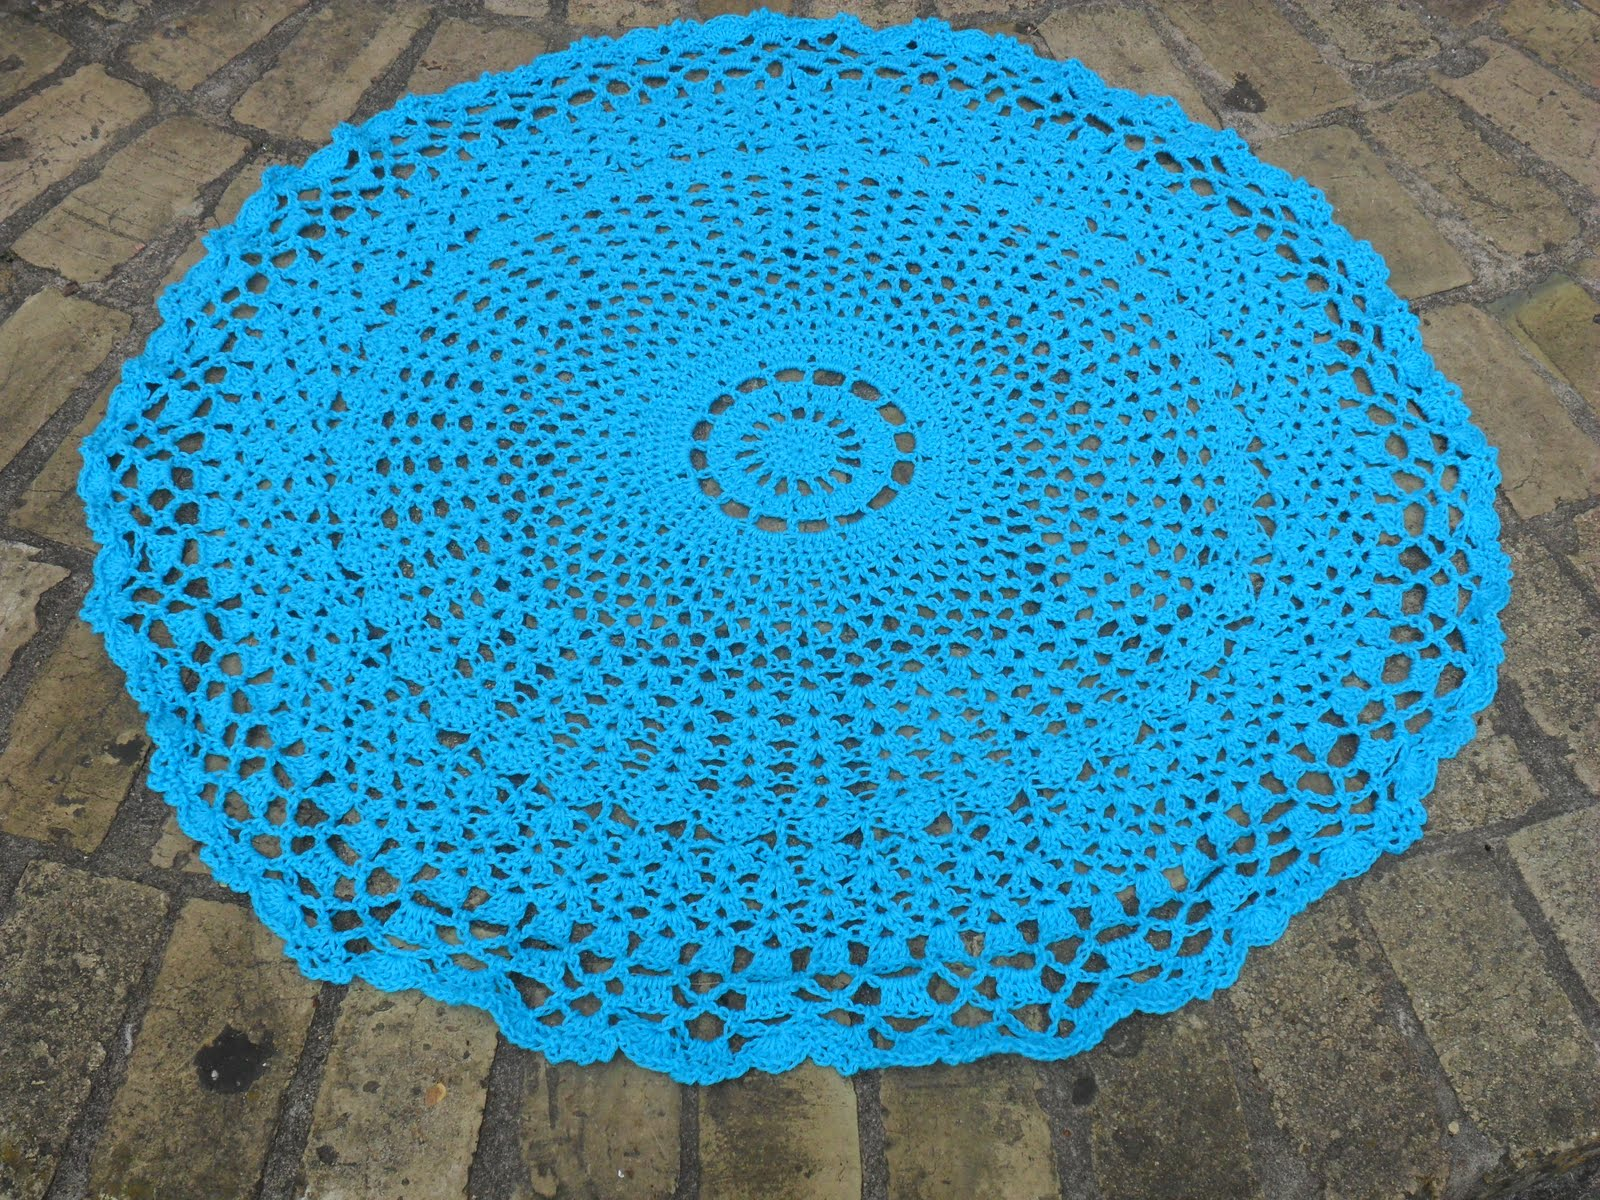 Valis Crochet Moment: New Pattern for Valis Circular Crochet Shawl